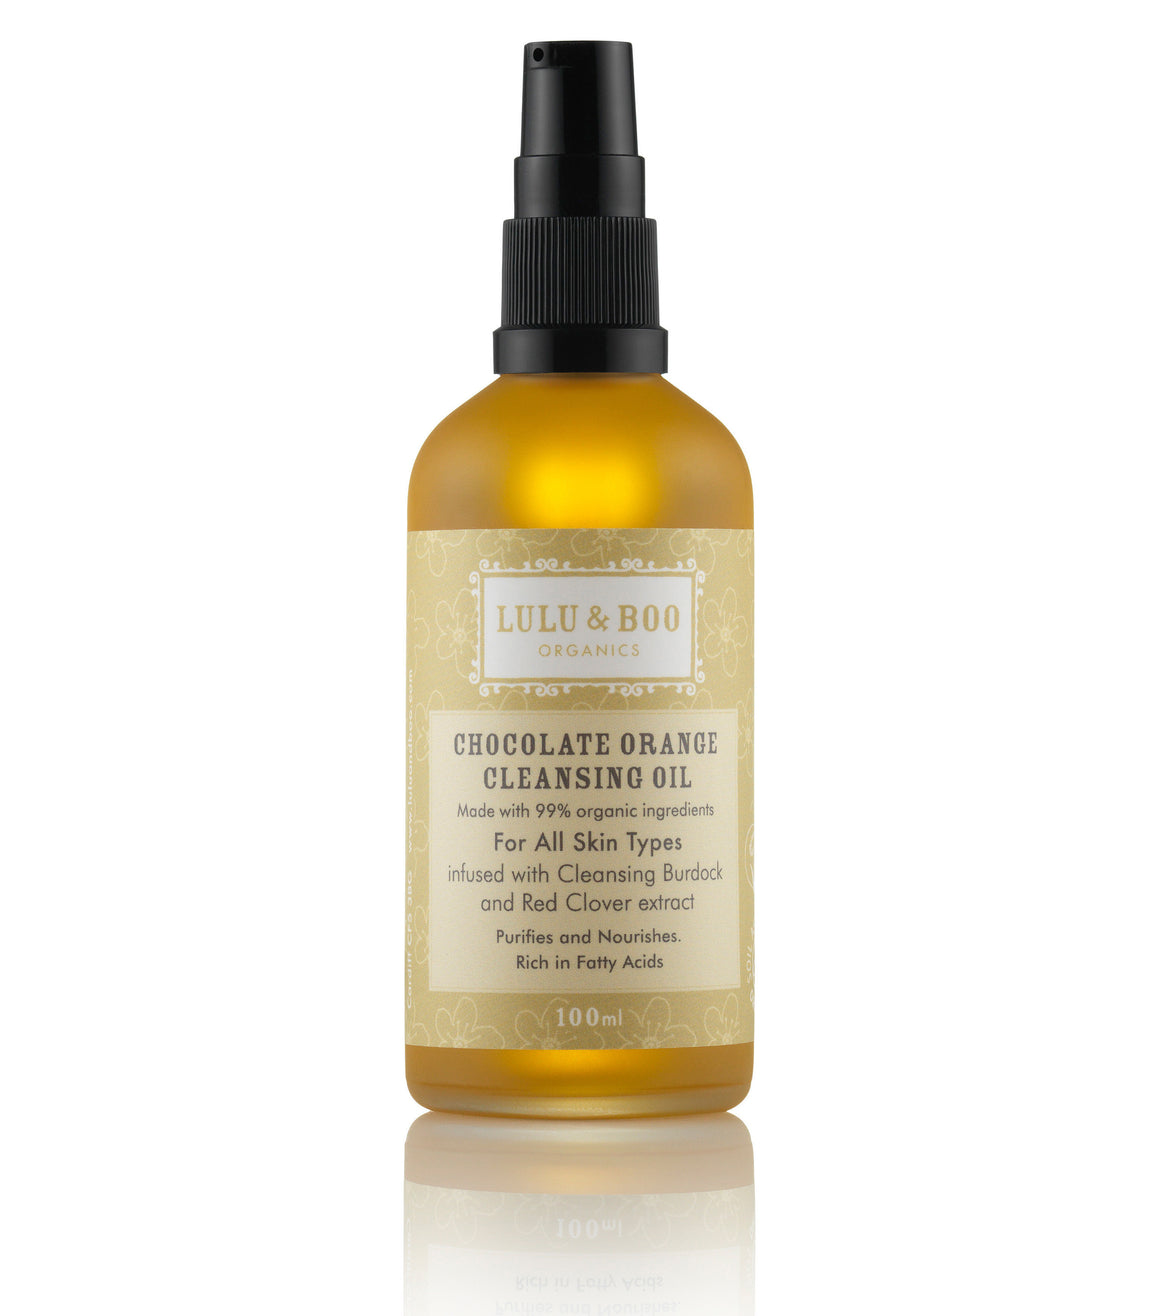 Chocolate Orange Cleansing Oil - Lulu & Boo Organics